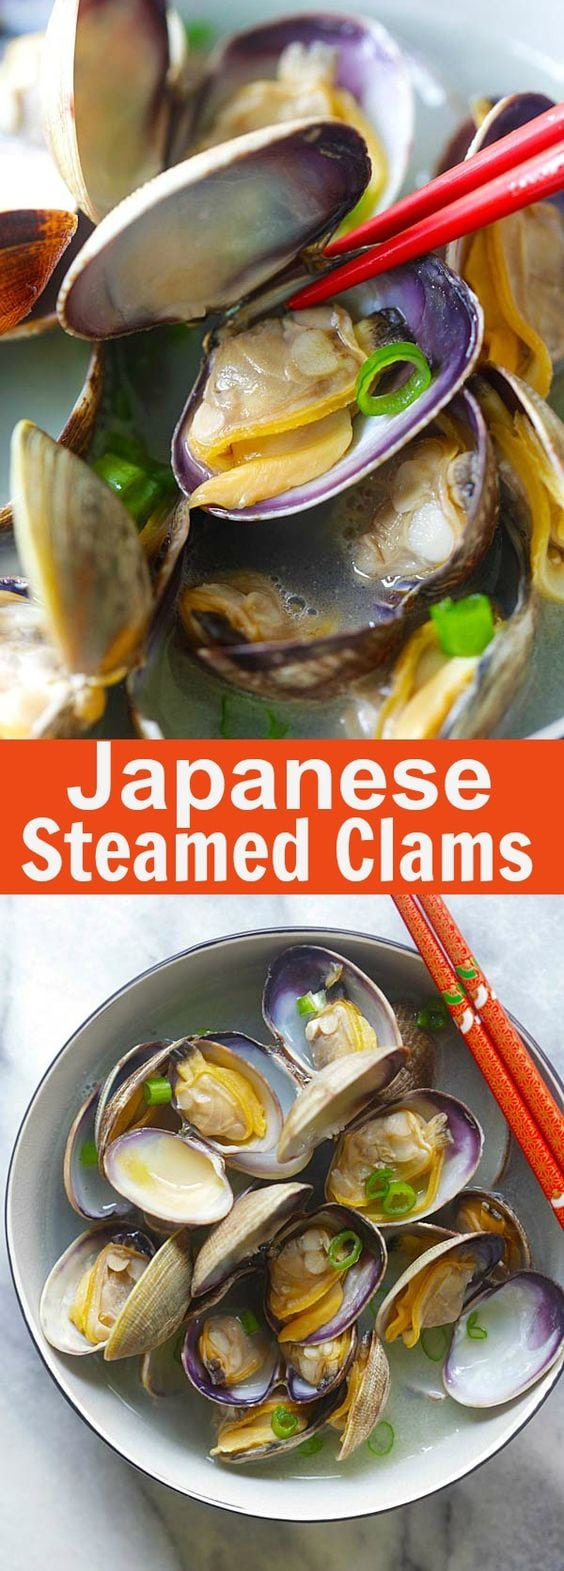 Japanese Steamed Clams - Manila (Asari) clams with butter, Japanese sake and mirin. Briny, delicious and takes only 10 mins | rasamalaysia.com